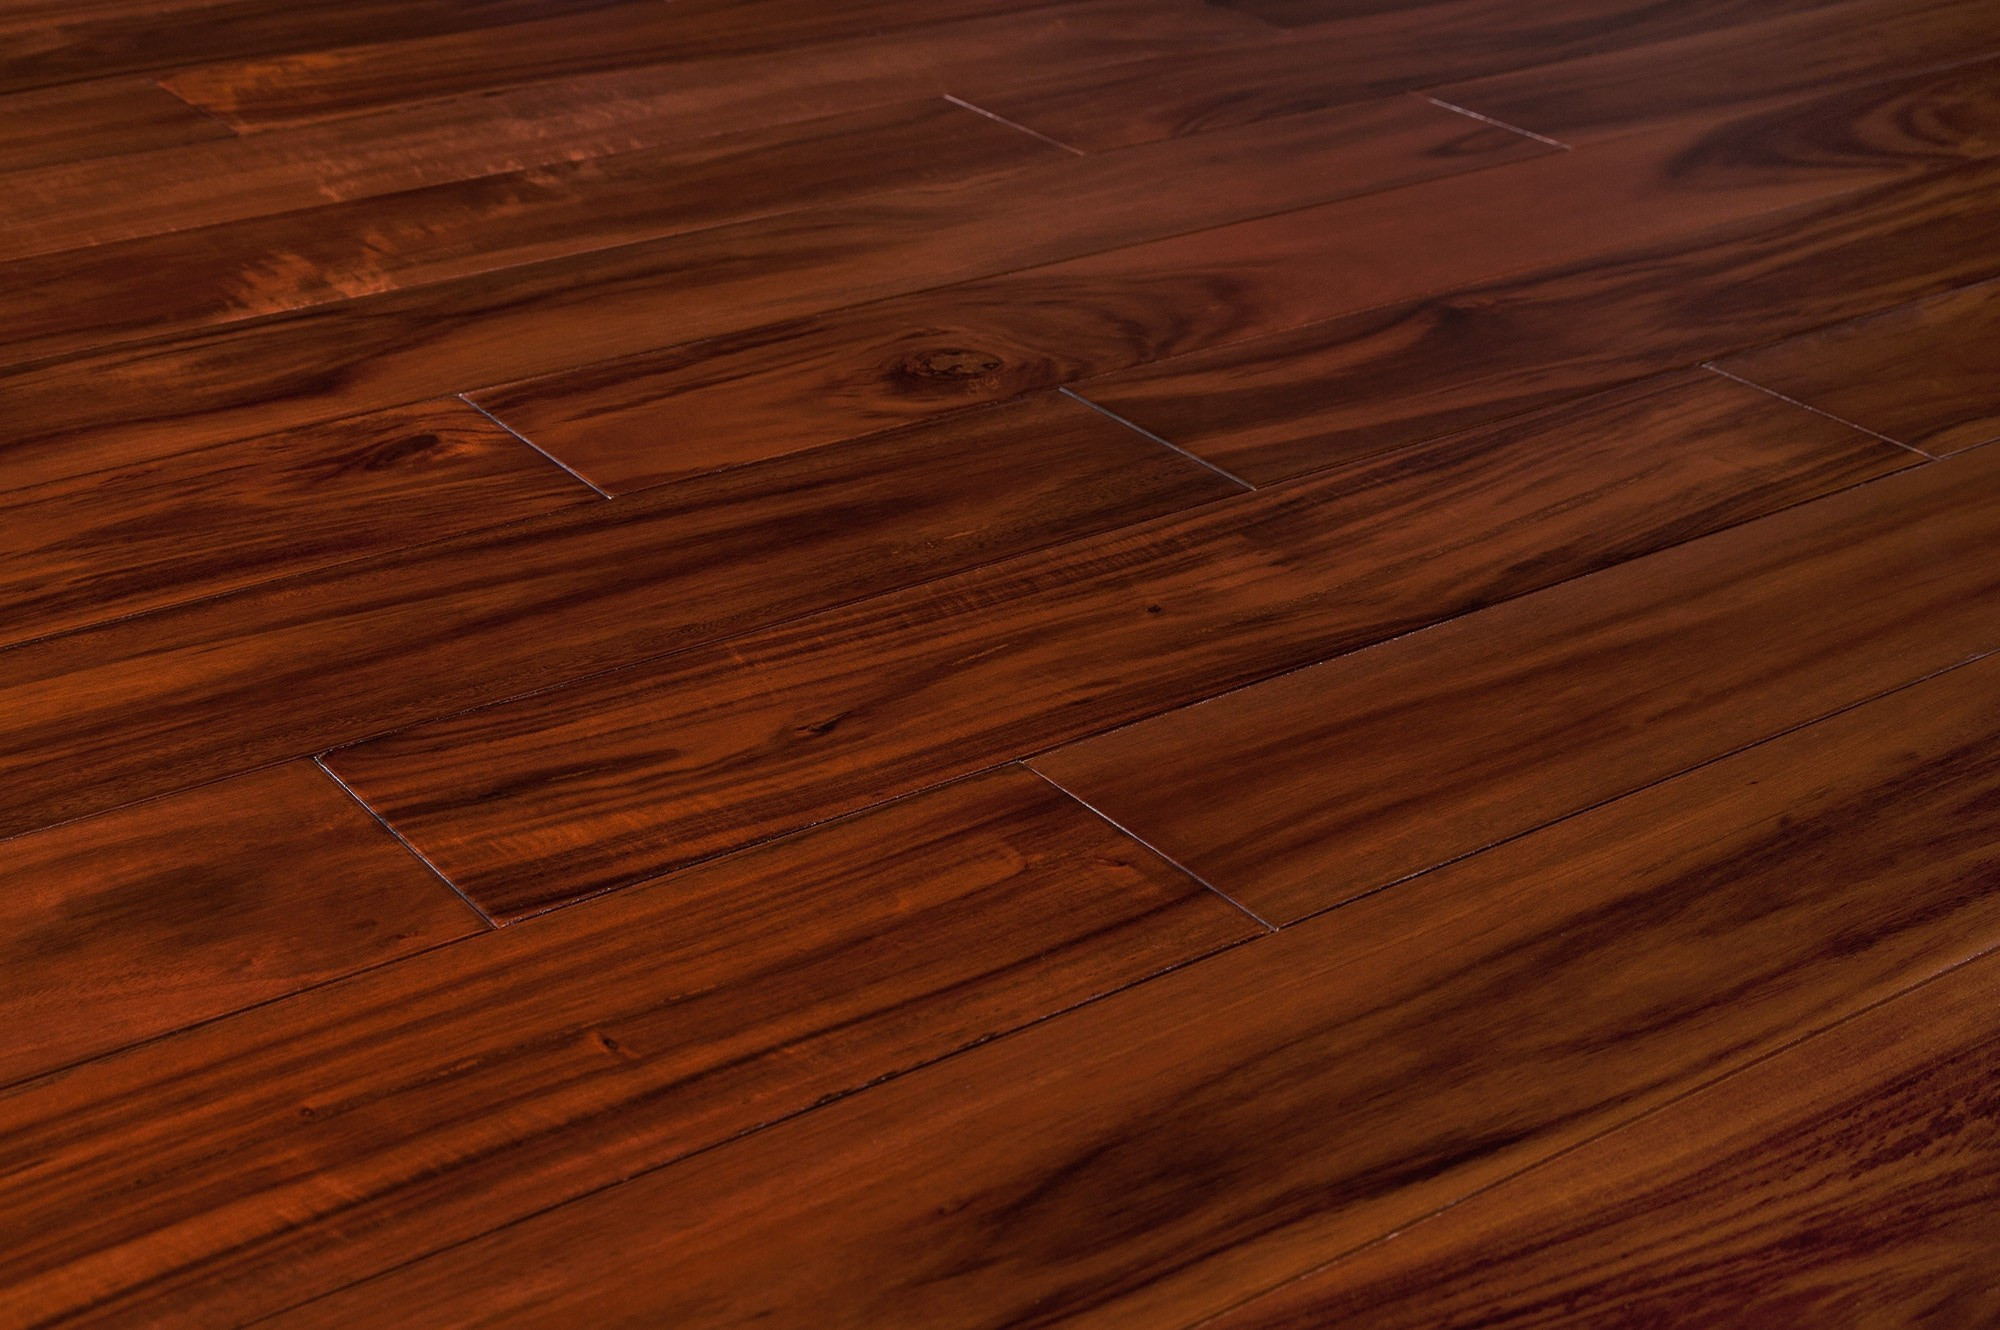 hardwood flooring quality reviews of 14 unique acacia solid hardwood flooring pics dizpos com throughout acacia solid hardwood flooring new clearance wood flooring house unique wide plank solid hardwood with photograph